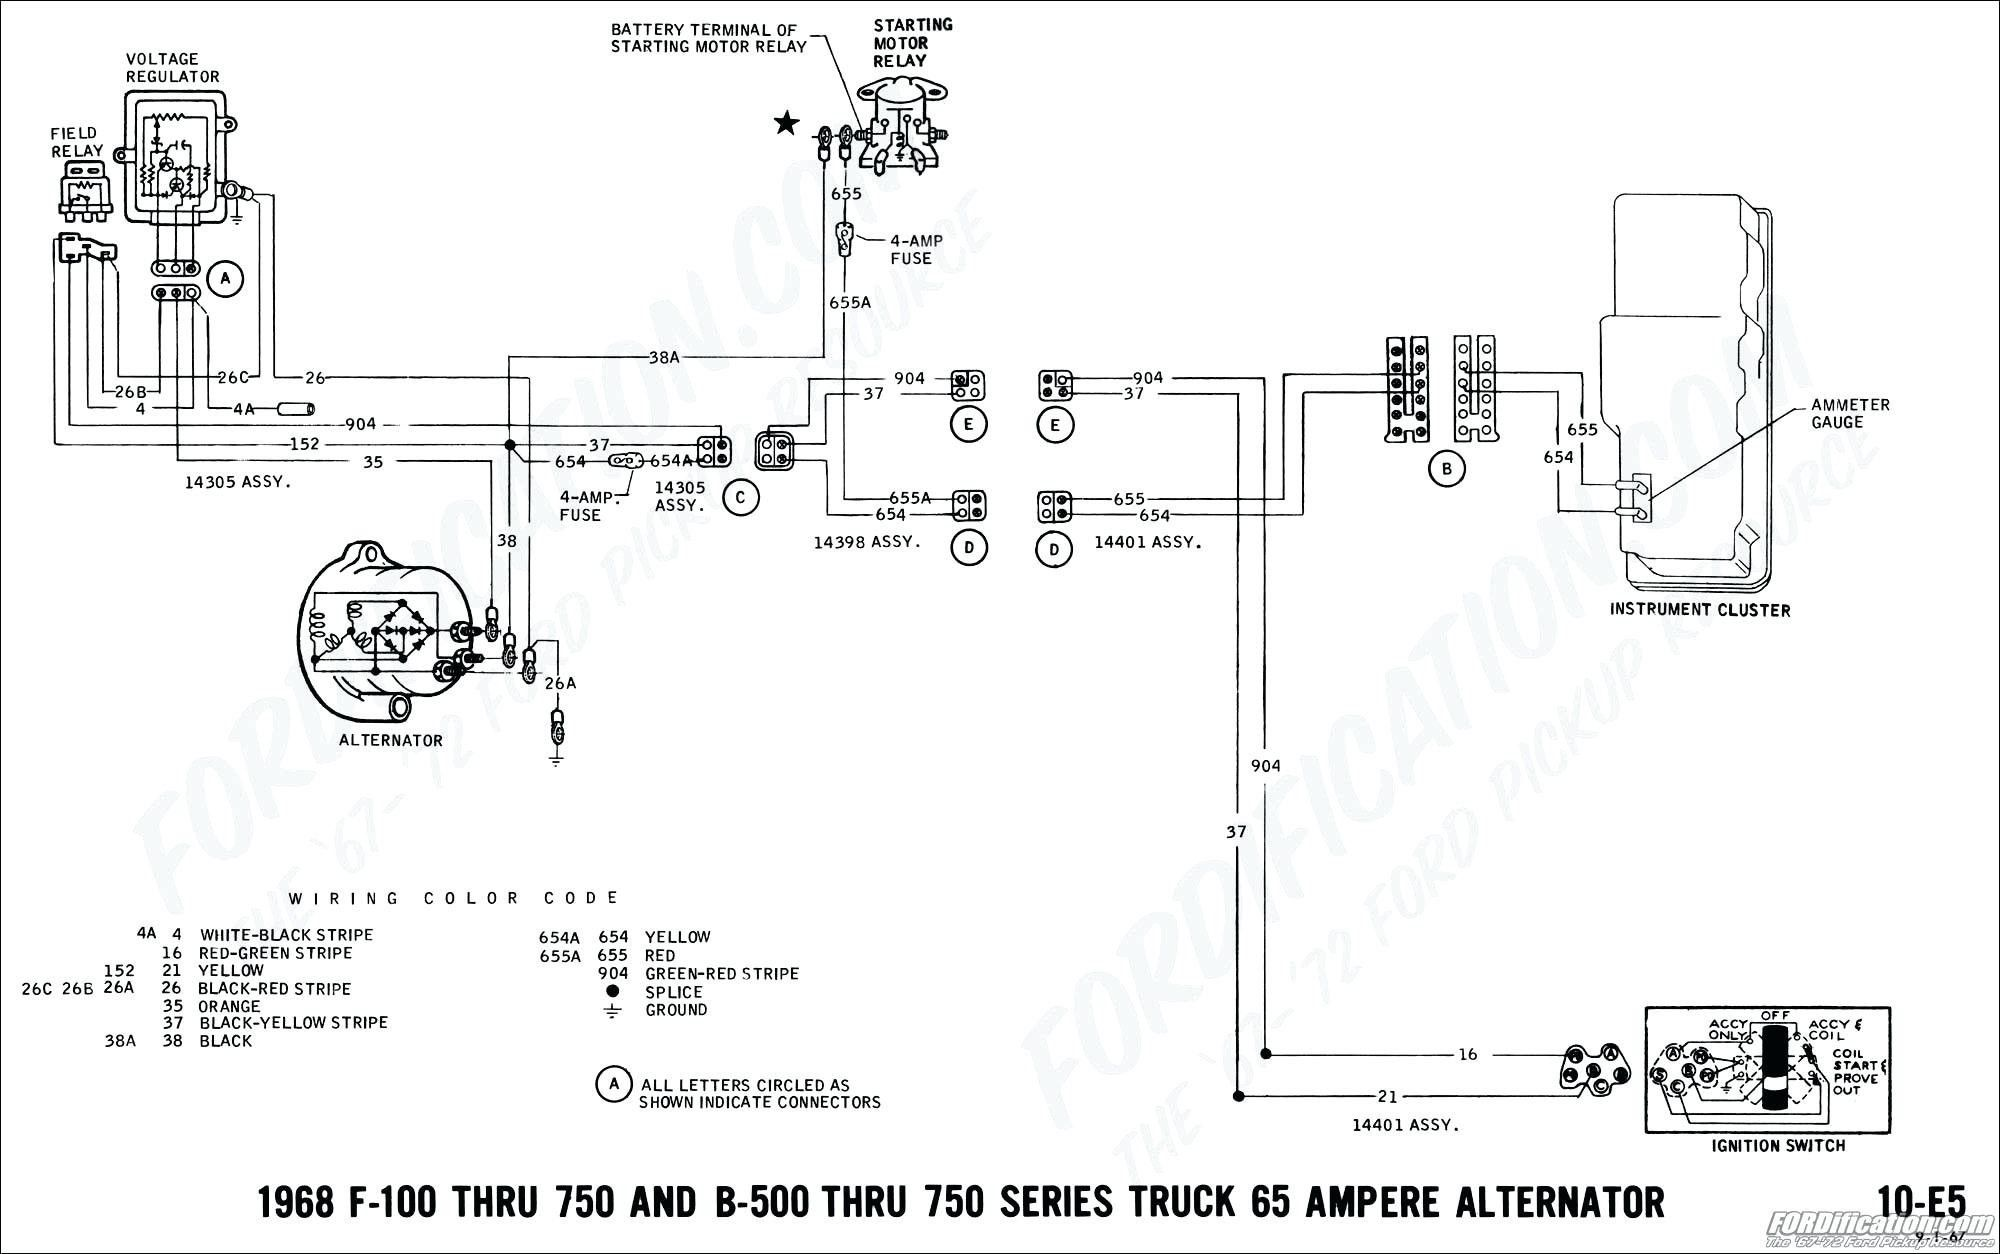 Awesome Three Wire Alternator Wiring Diagram Gm Diagrams Digramssample Diagramimages Wiringdiagramsample Wiringdiagr Alternator Electrical Diagram Diagram